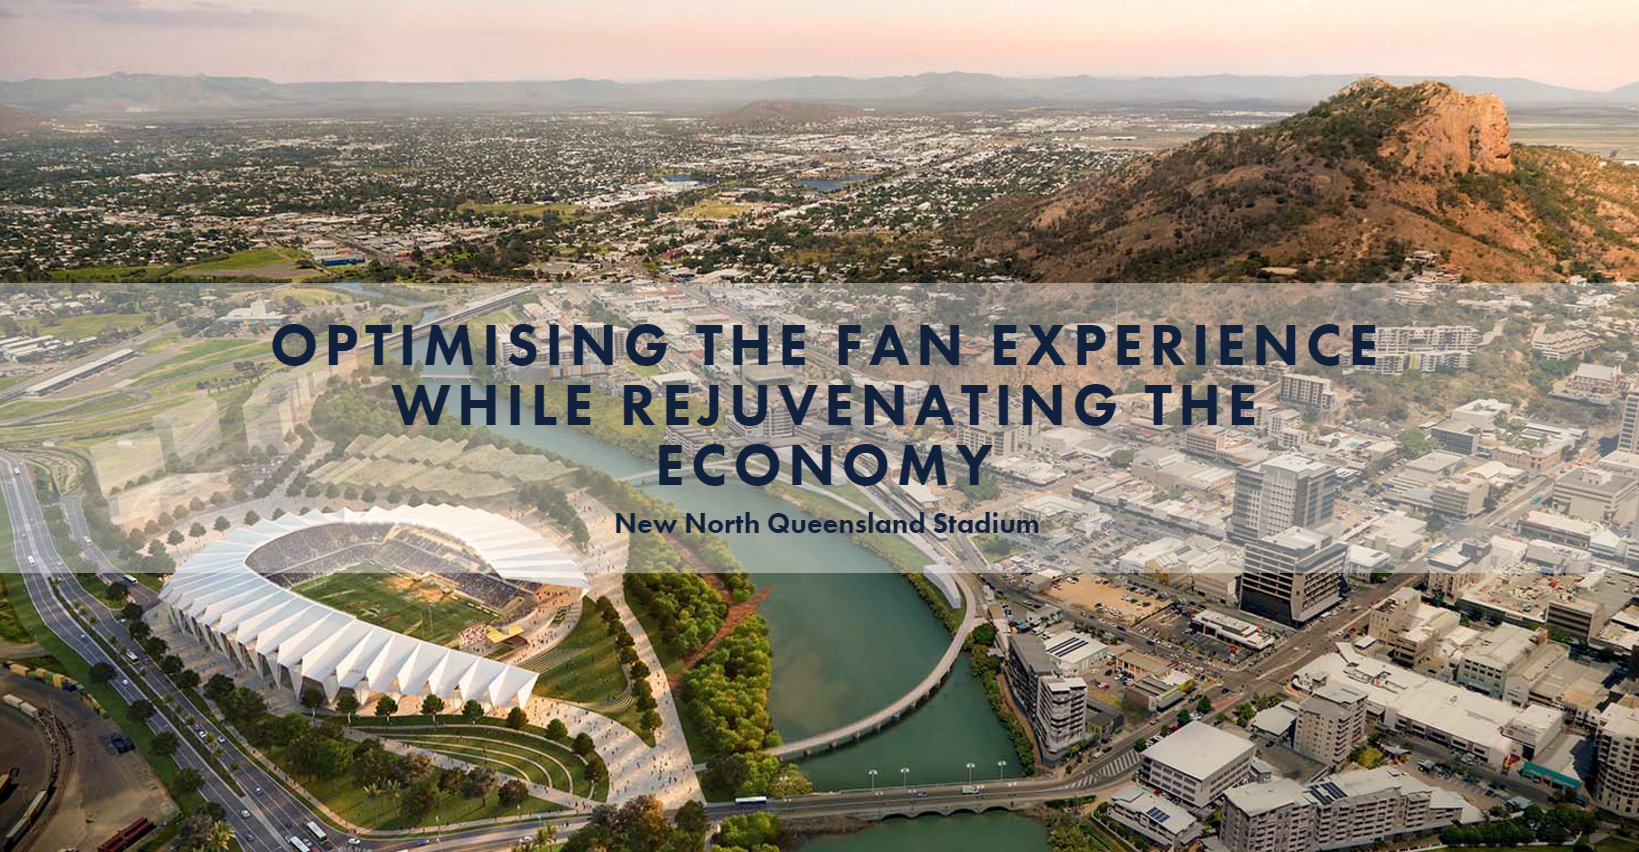 Optimising the Fan Experience while Rejuvenating the Economy